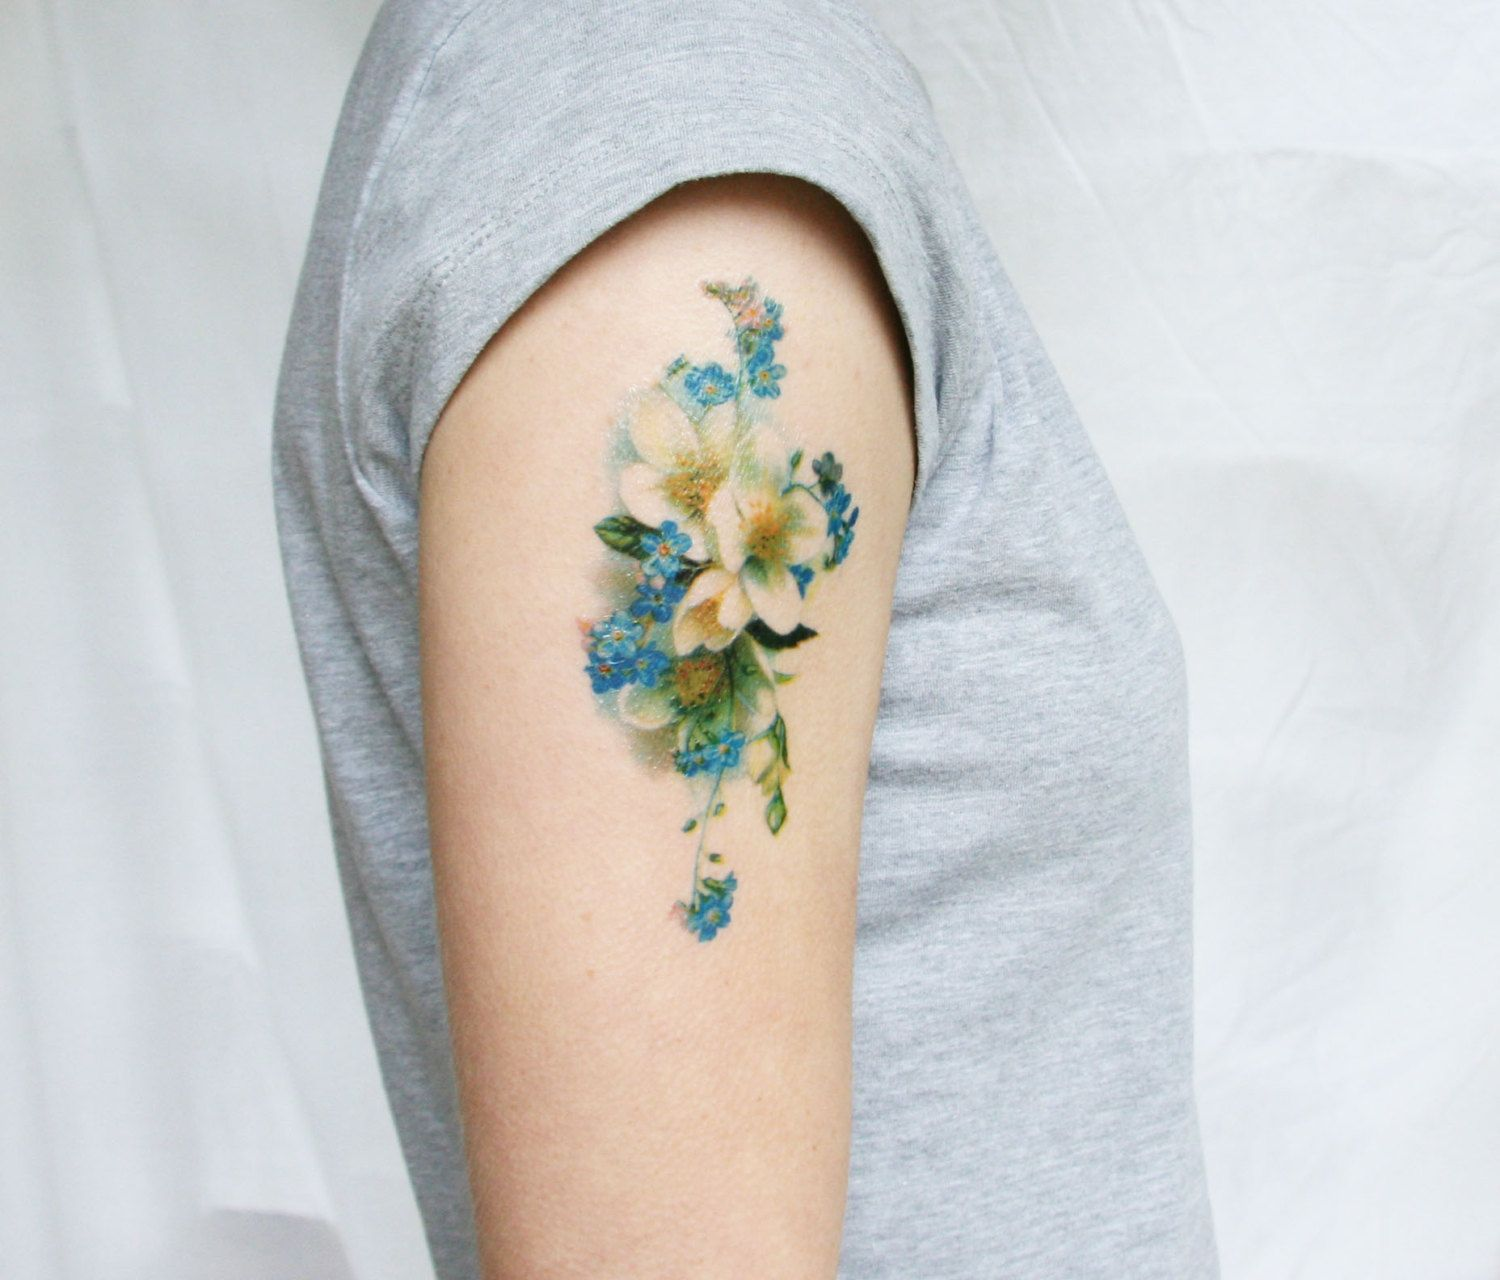 Floral Tattoos Pinterest Tattoo Floral And Floral Tattoo Design